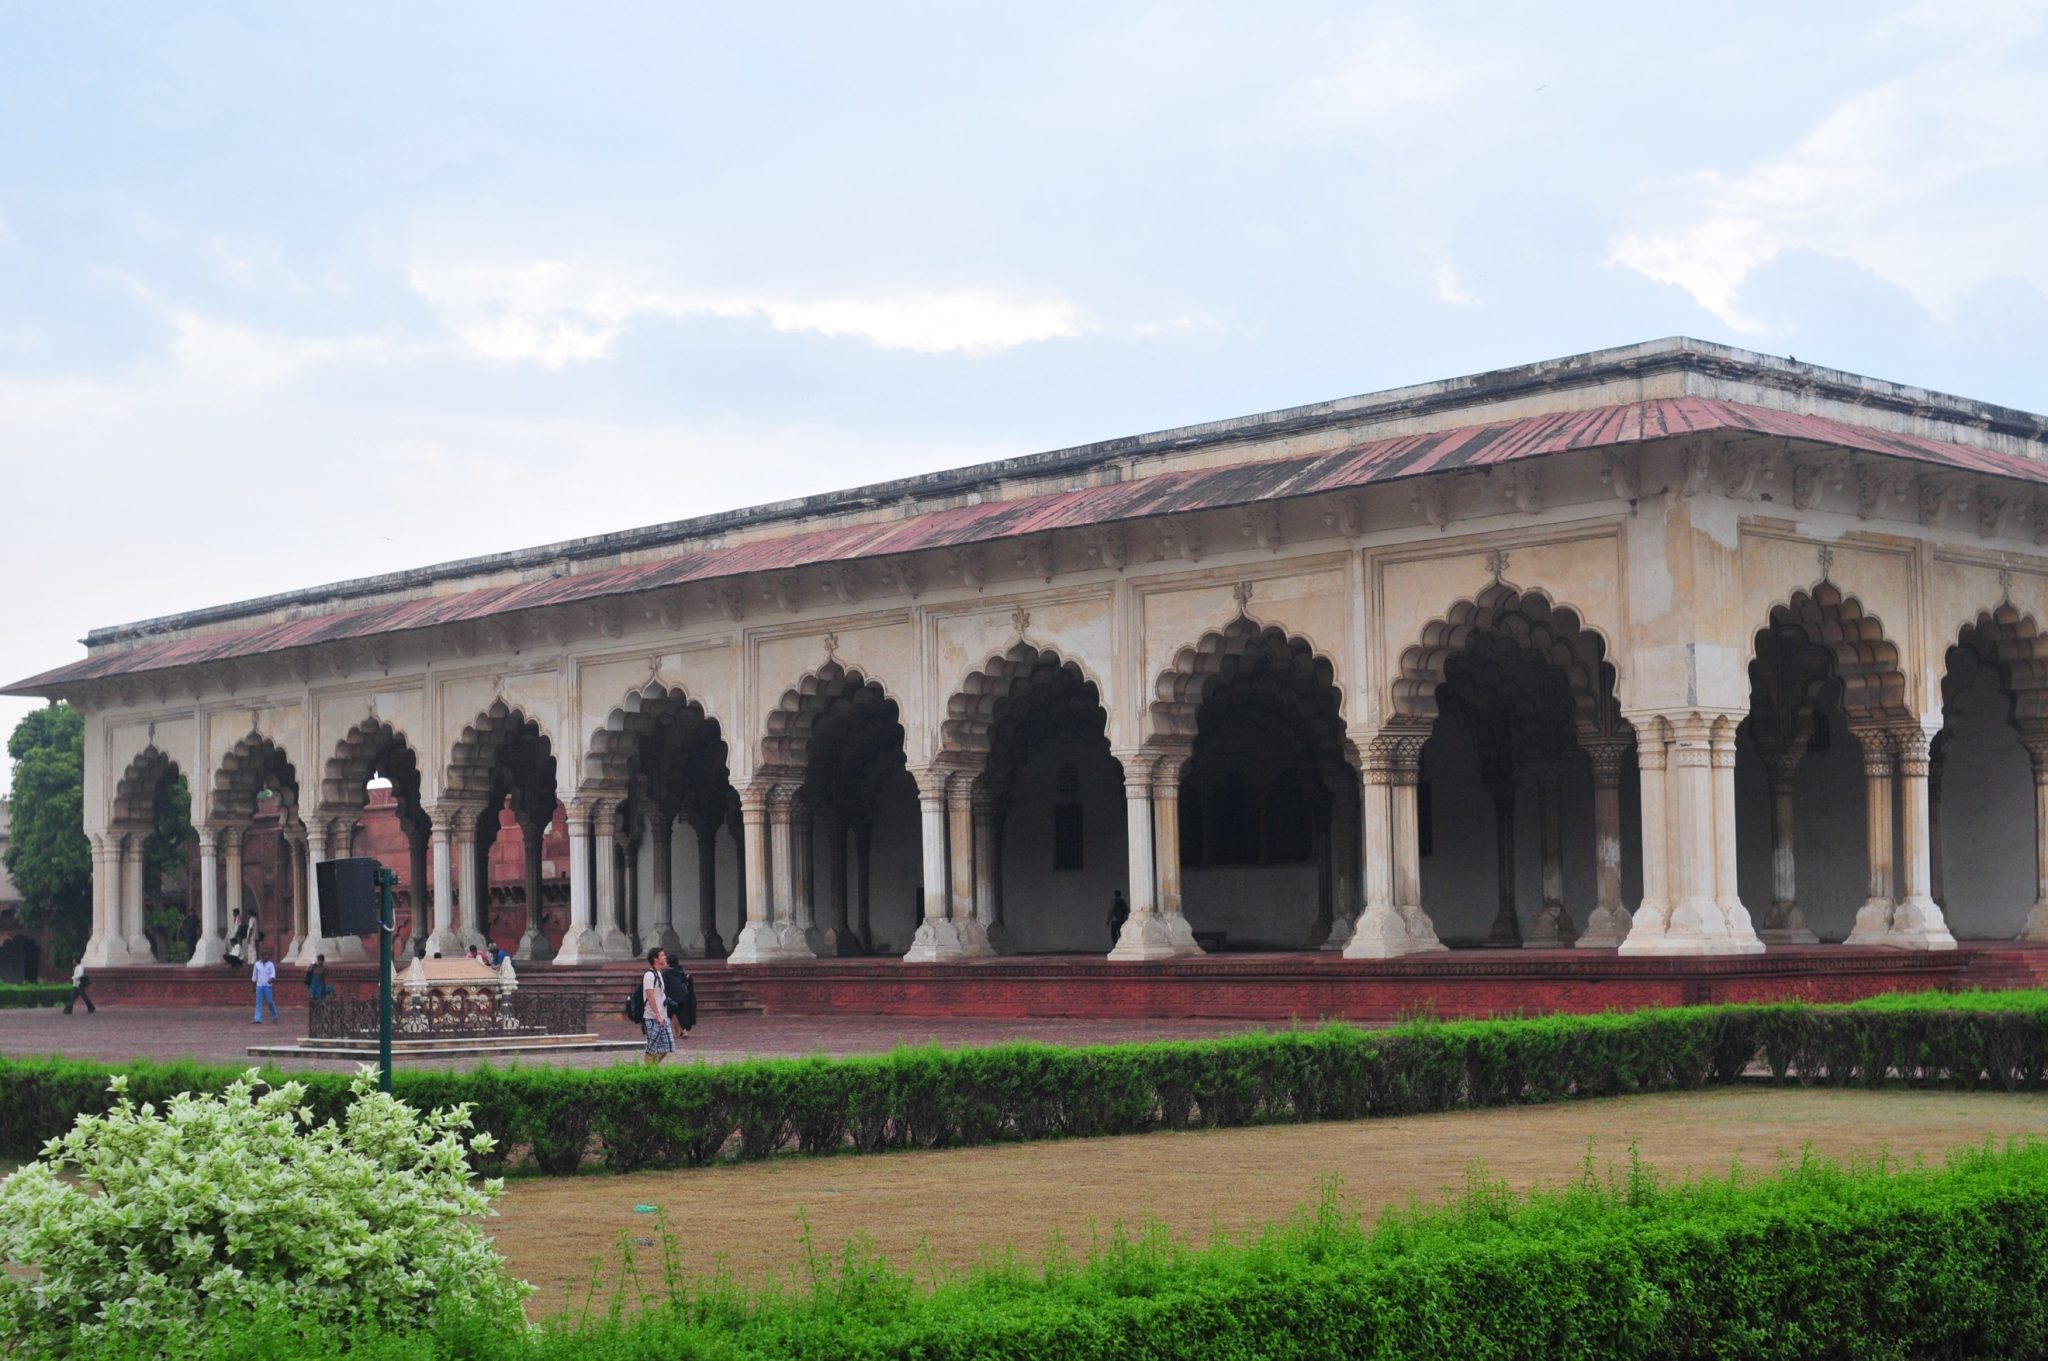 Indian Architecture with an Islamic influenceRooted in History